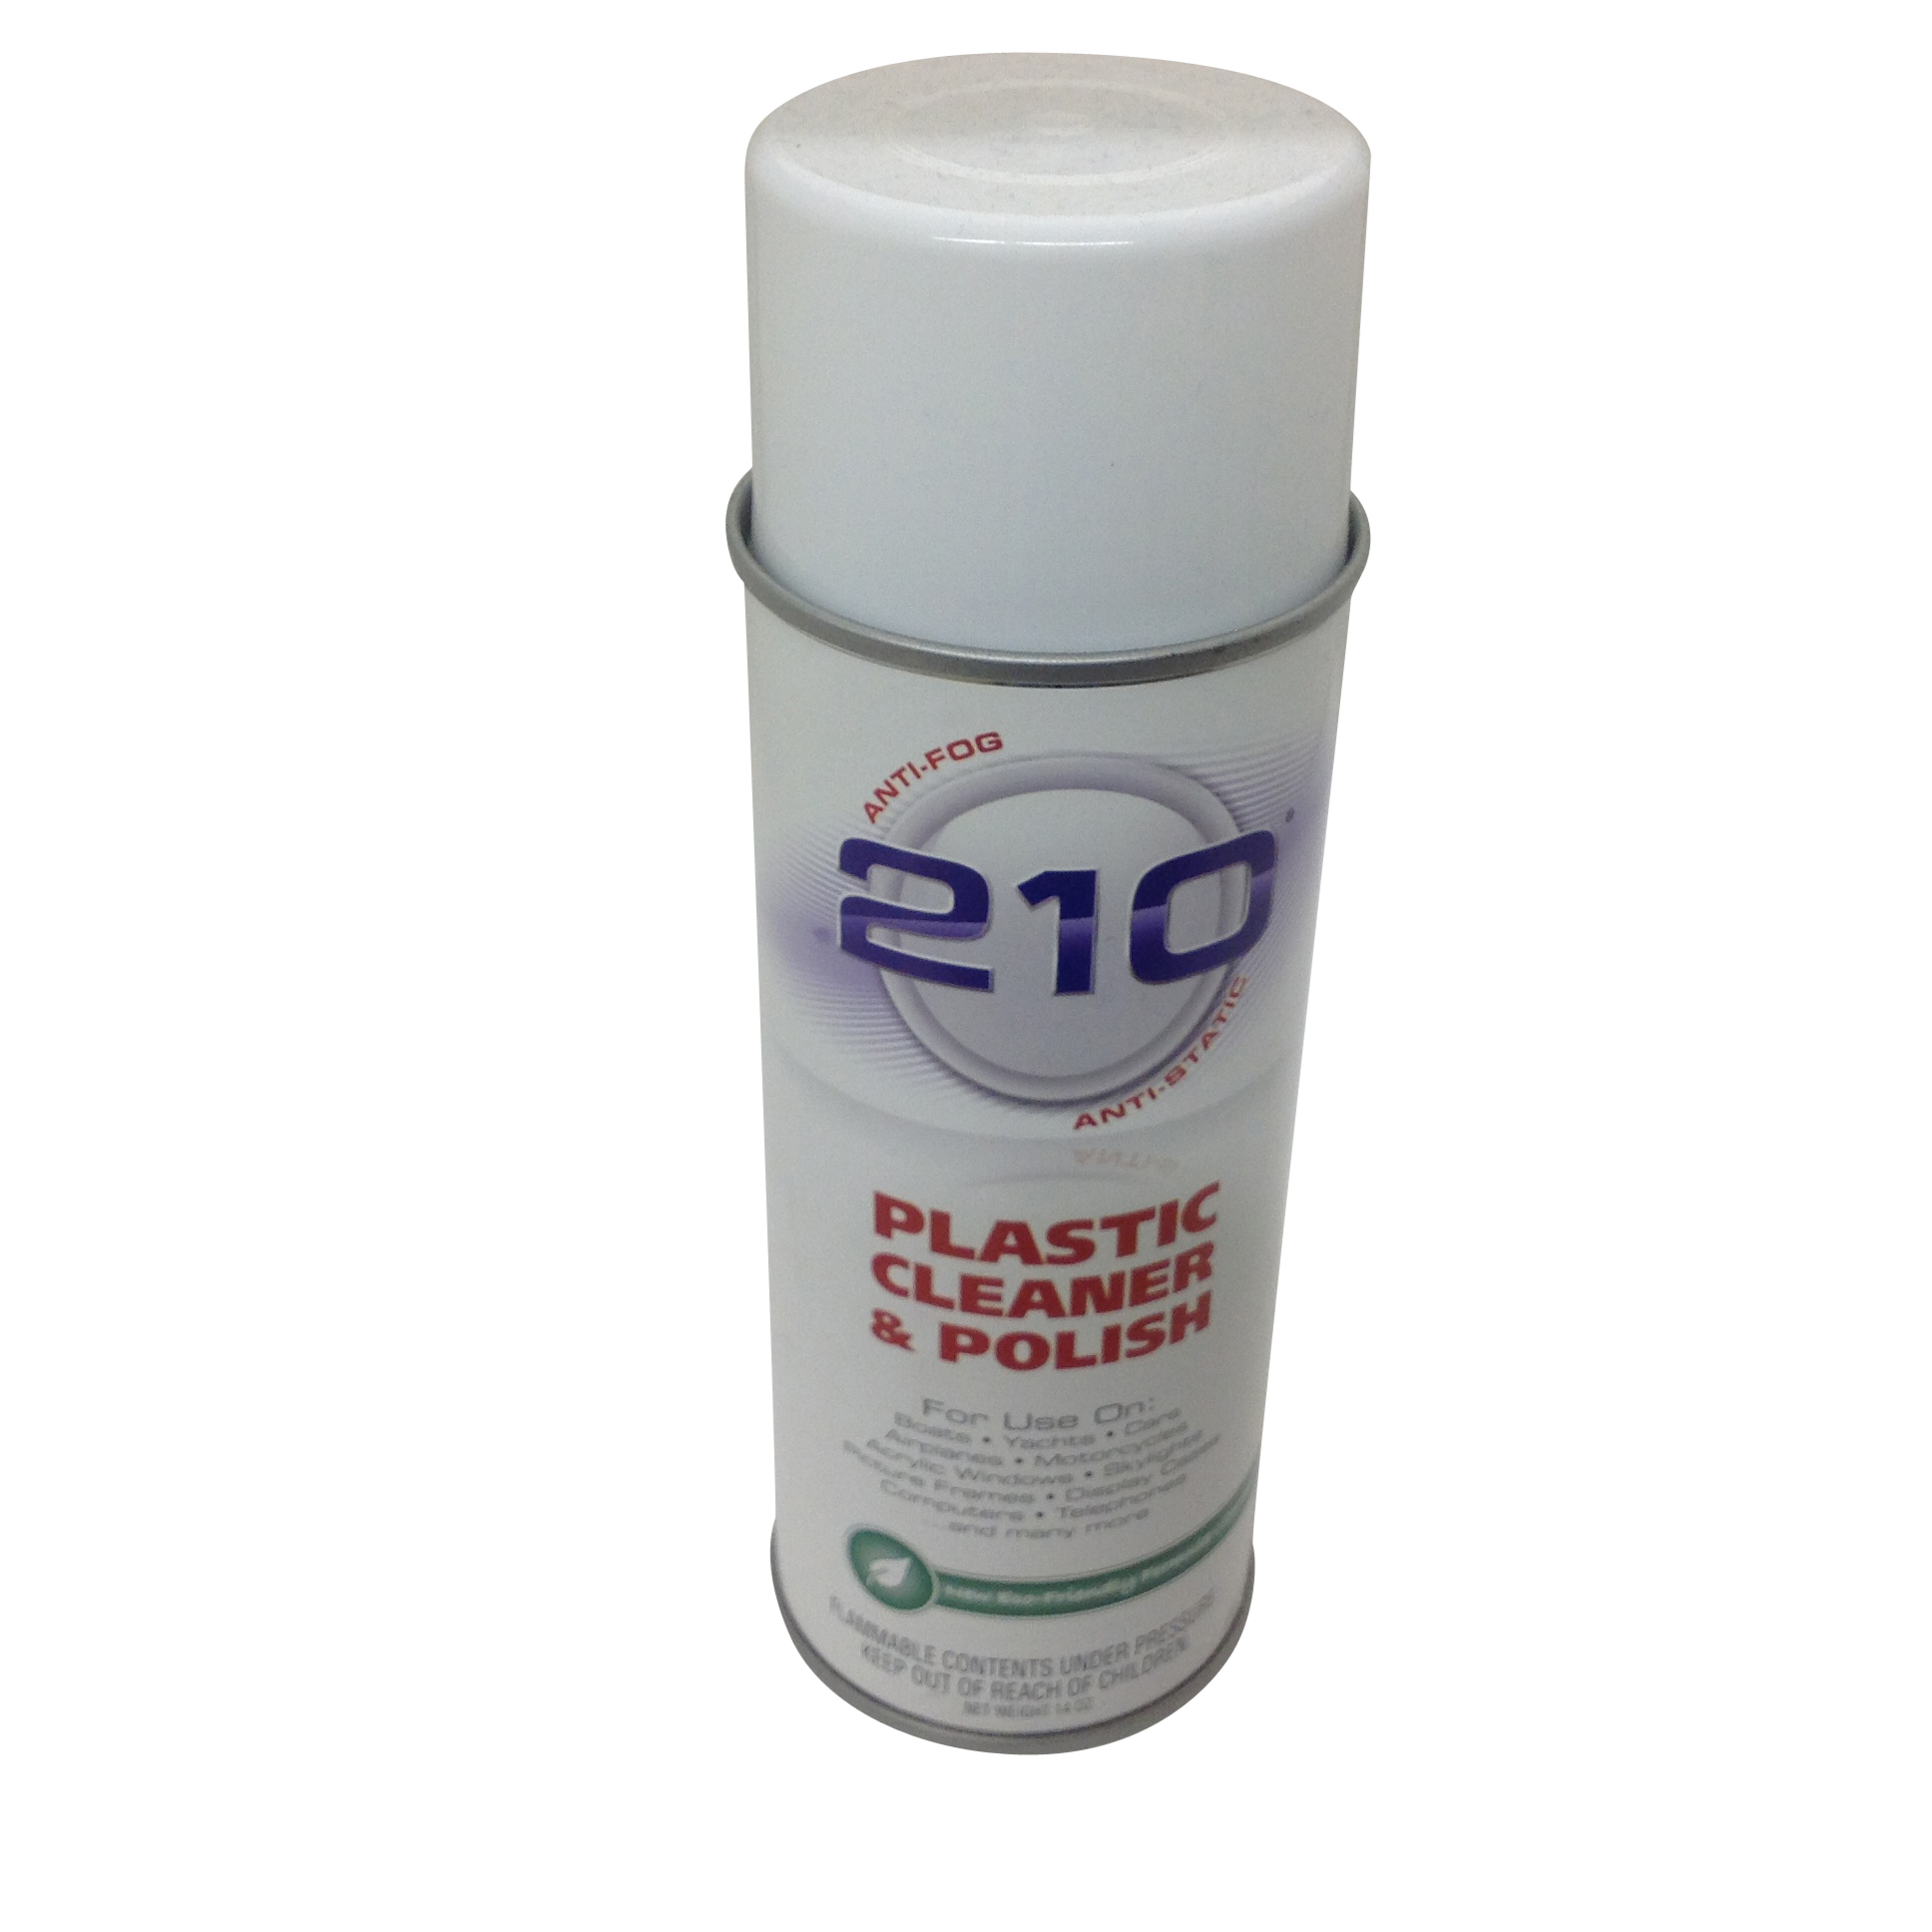 210 Plastic Cleaner and Polish